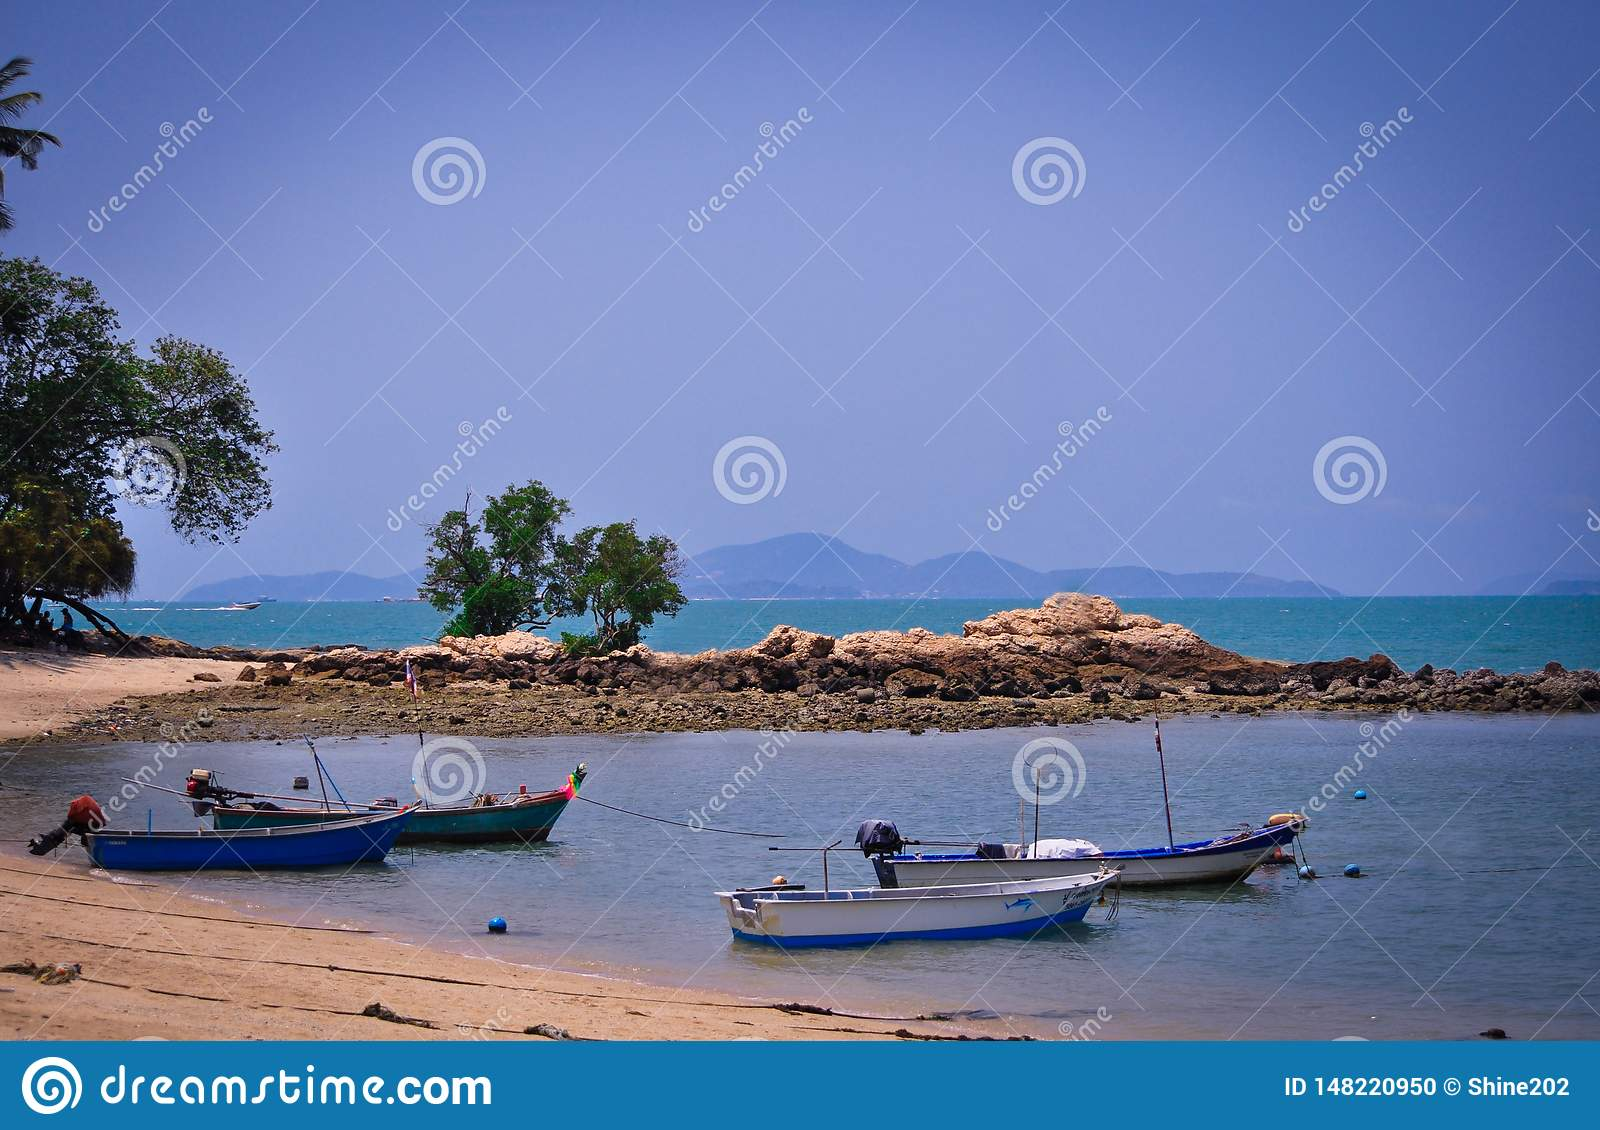 Magnificent views of the endless sea, sandy strip and boats in Pattaya, Thailand